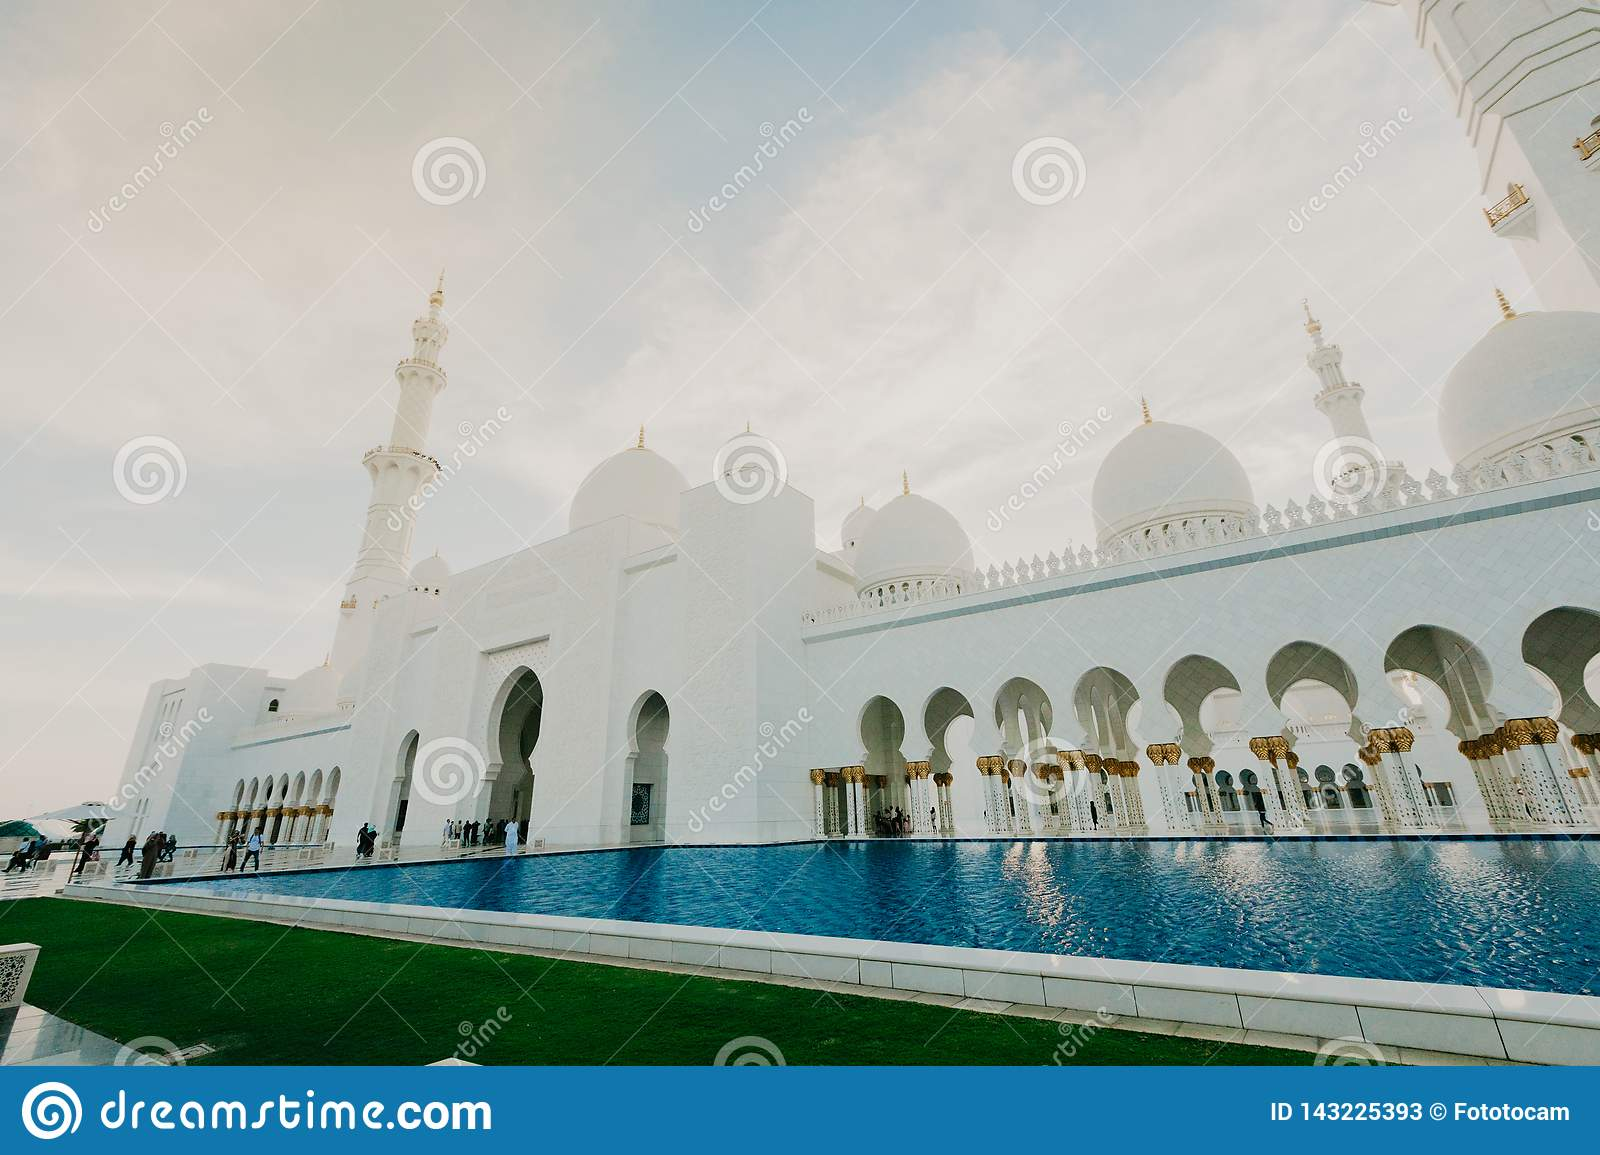 DUBAI, UAE - January 06,2019: Sheikh Zayed Grand Mosque, Abu Dhabi. The 3rd largest mosque in the world, area is 22,412 square